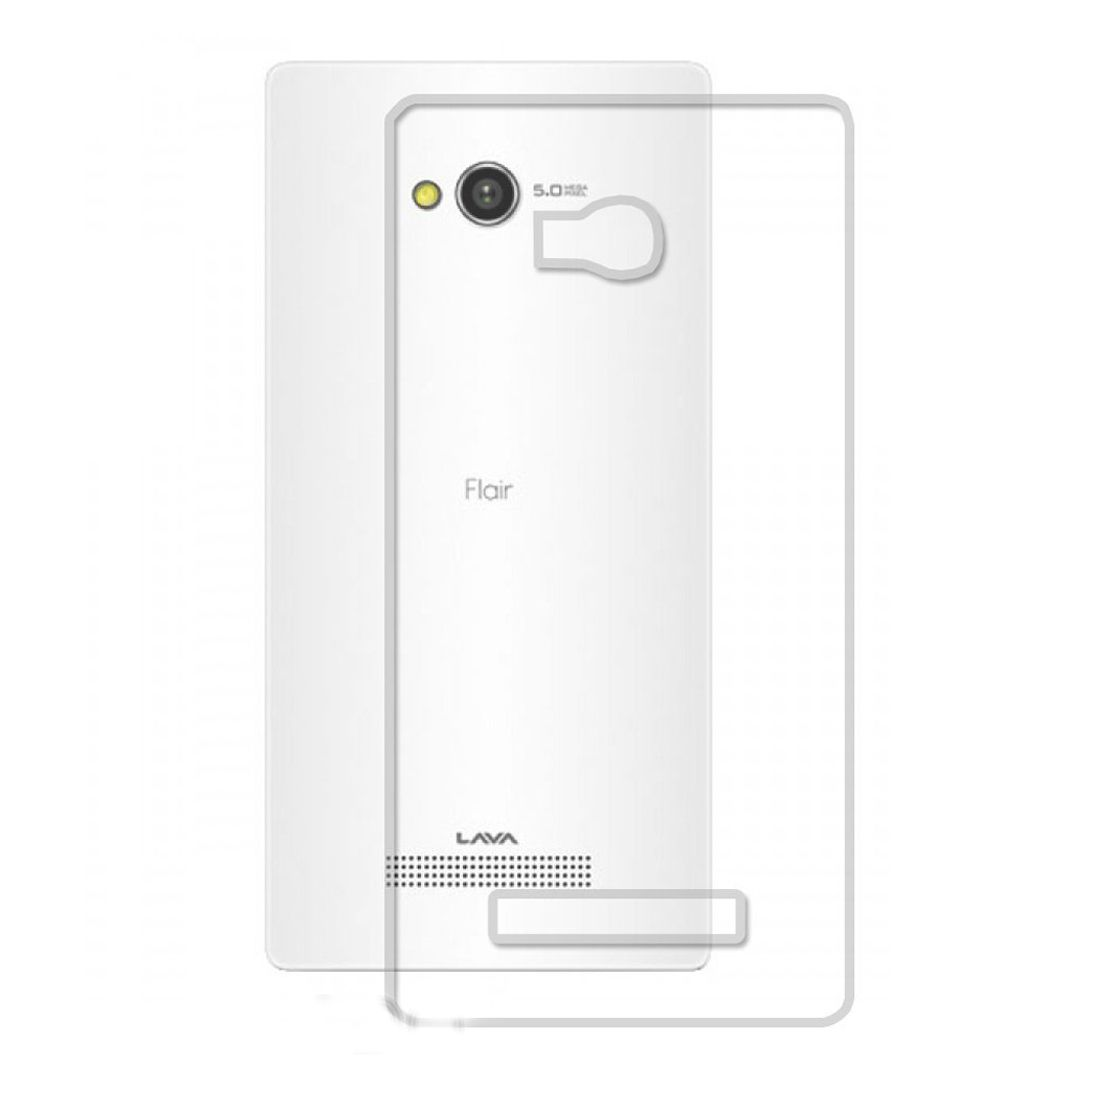 Noise Transparent Clear Silicone Jelly Soft Case Back Cover For Lava Flair Z1 available at SnapDeal for Rs.299